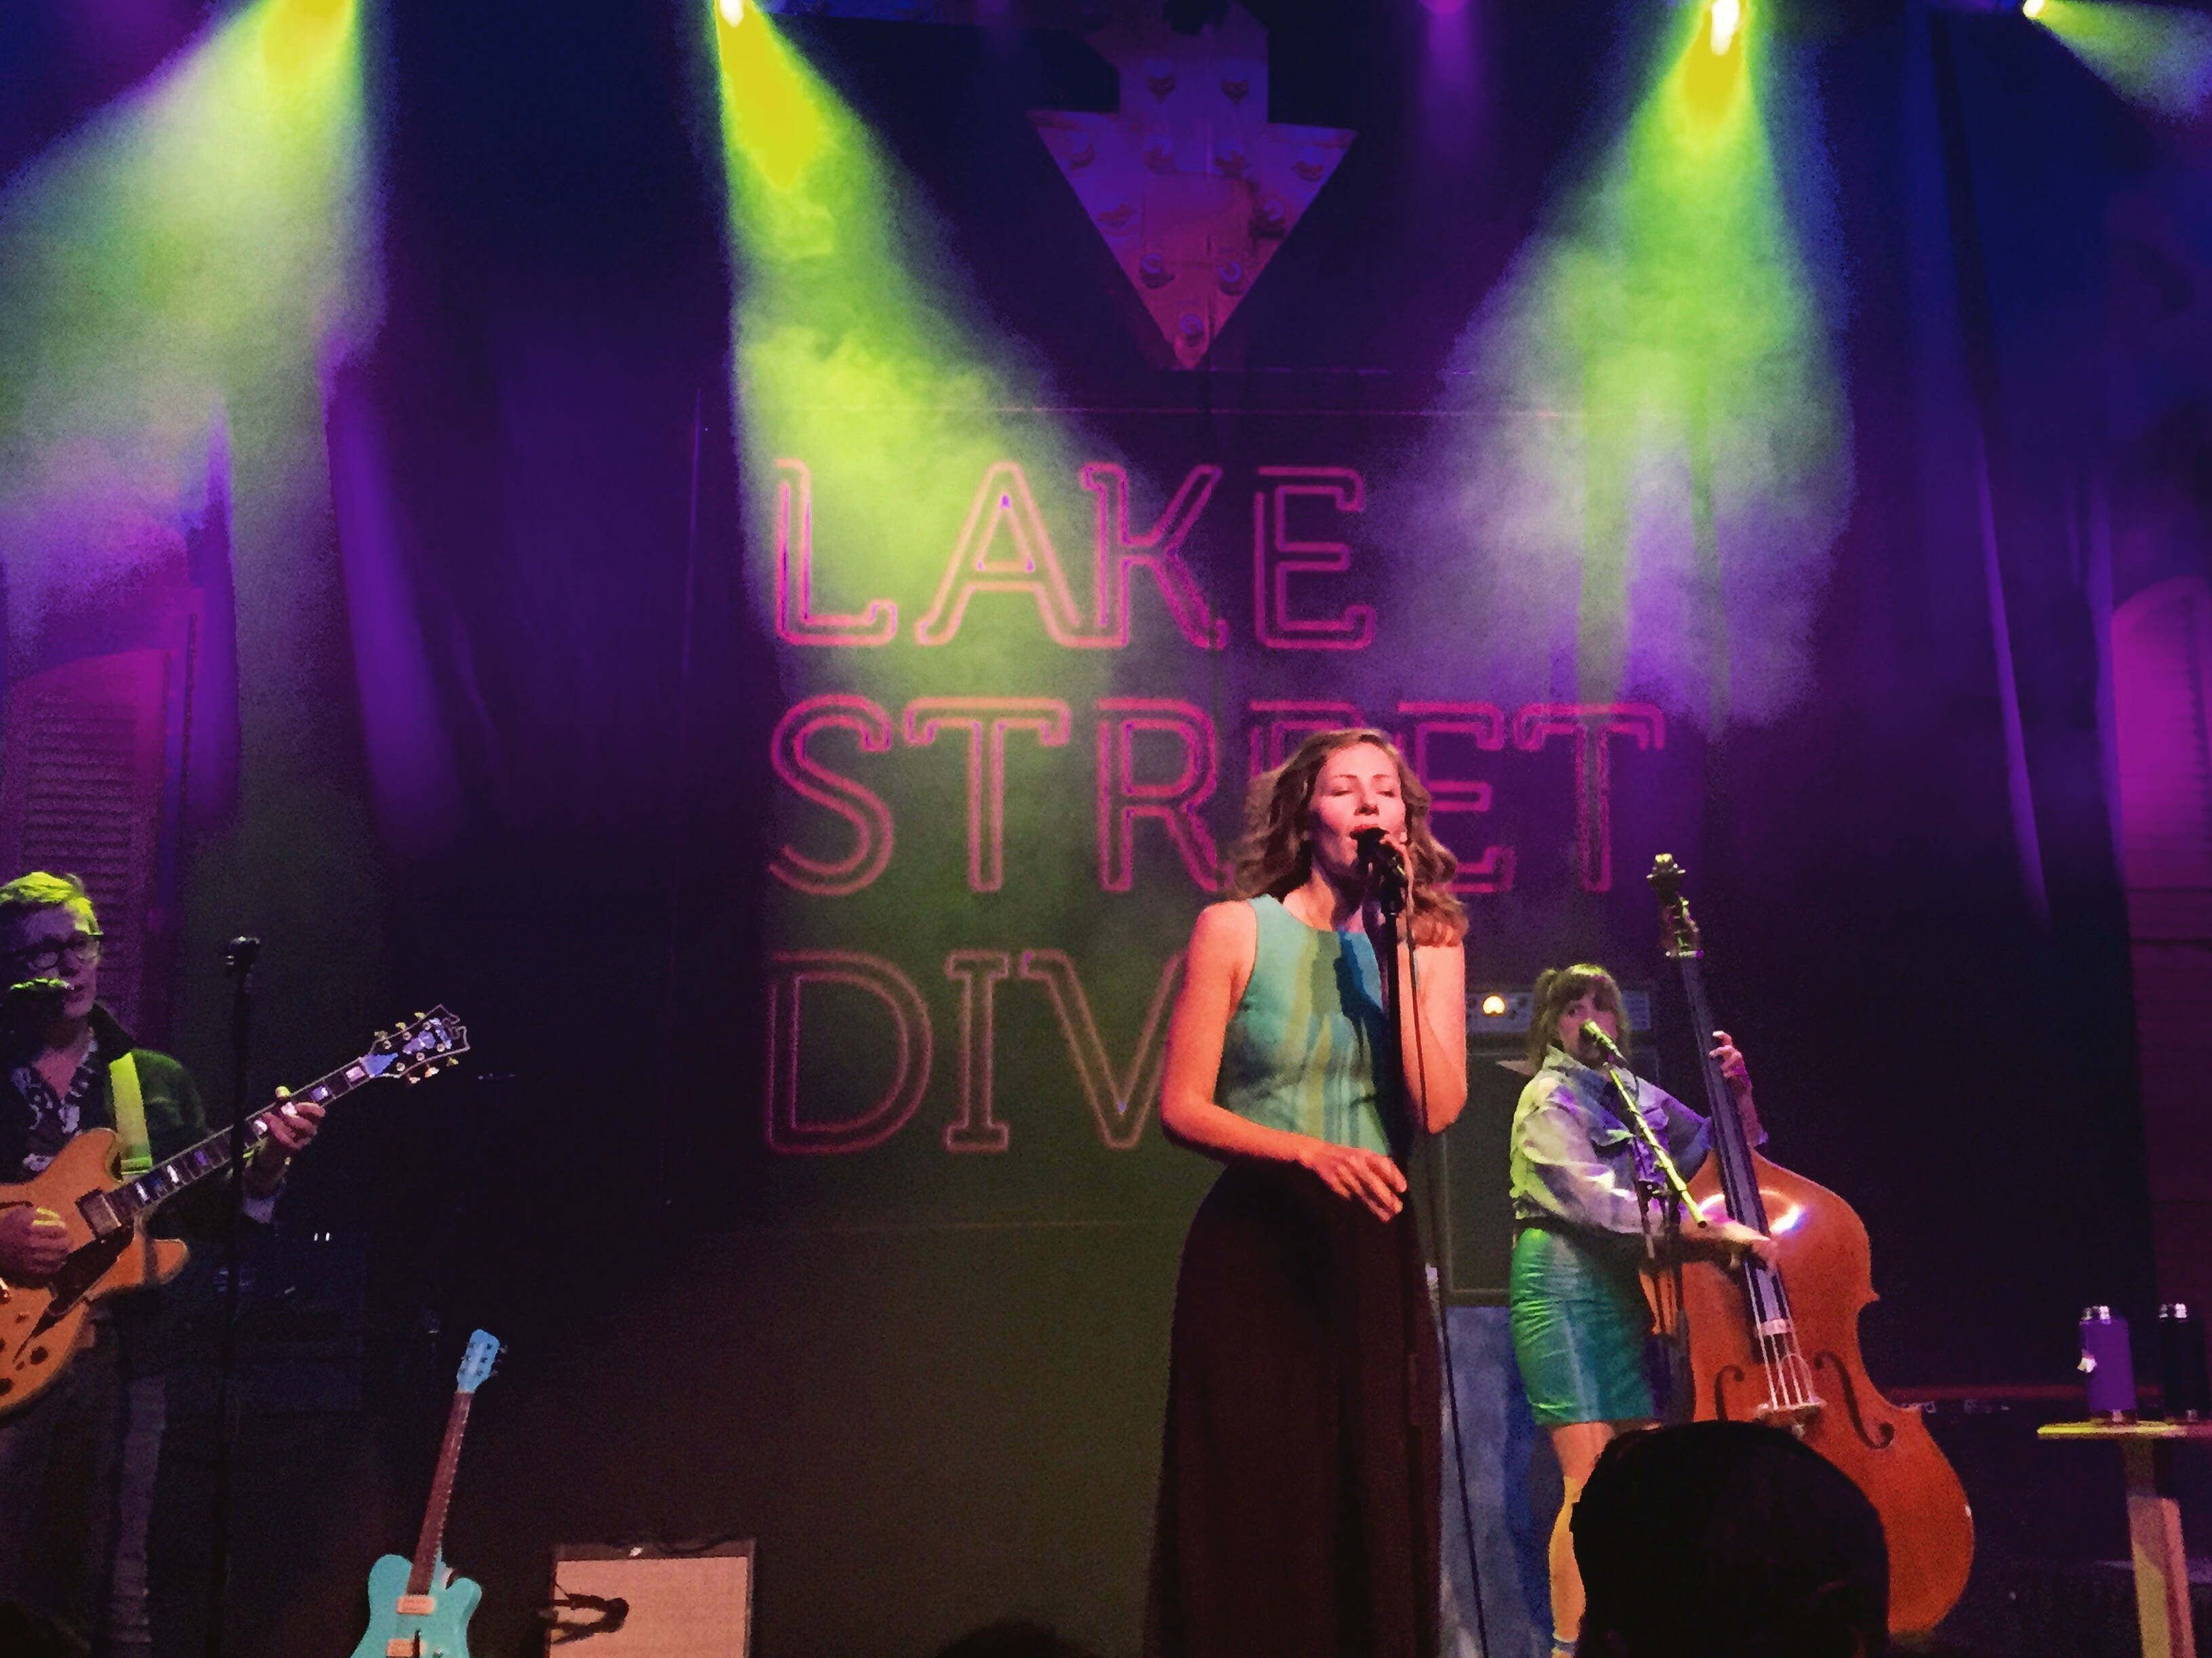 Lake Street Dive @ House Of Blues, LA 10/14/2015